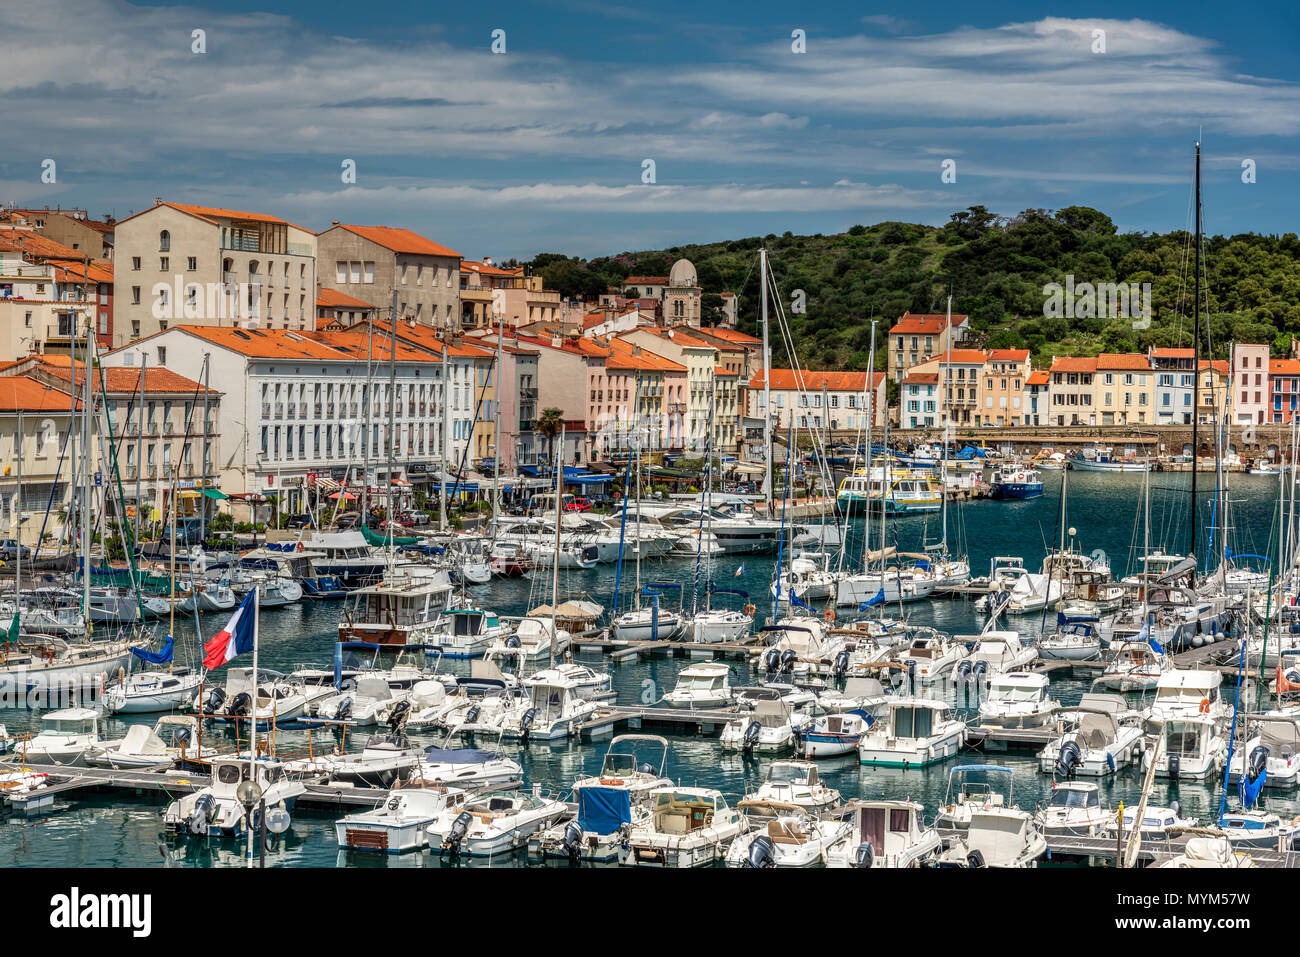 Port-Vendres, Pyrenees-Orientales, France - Stock Image